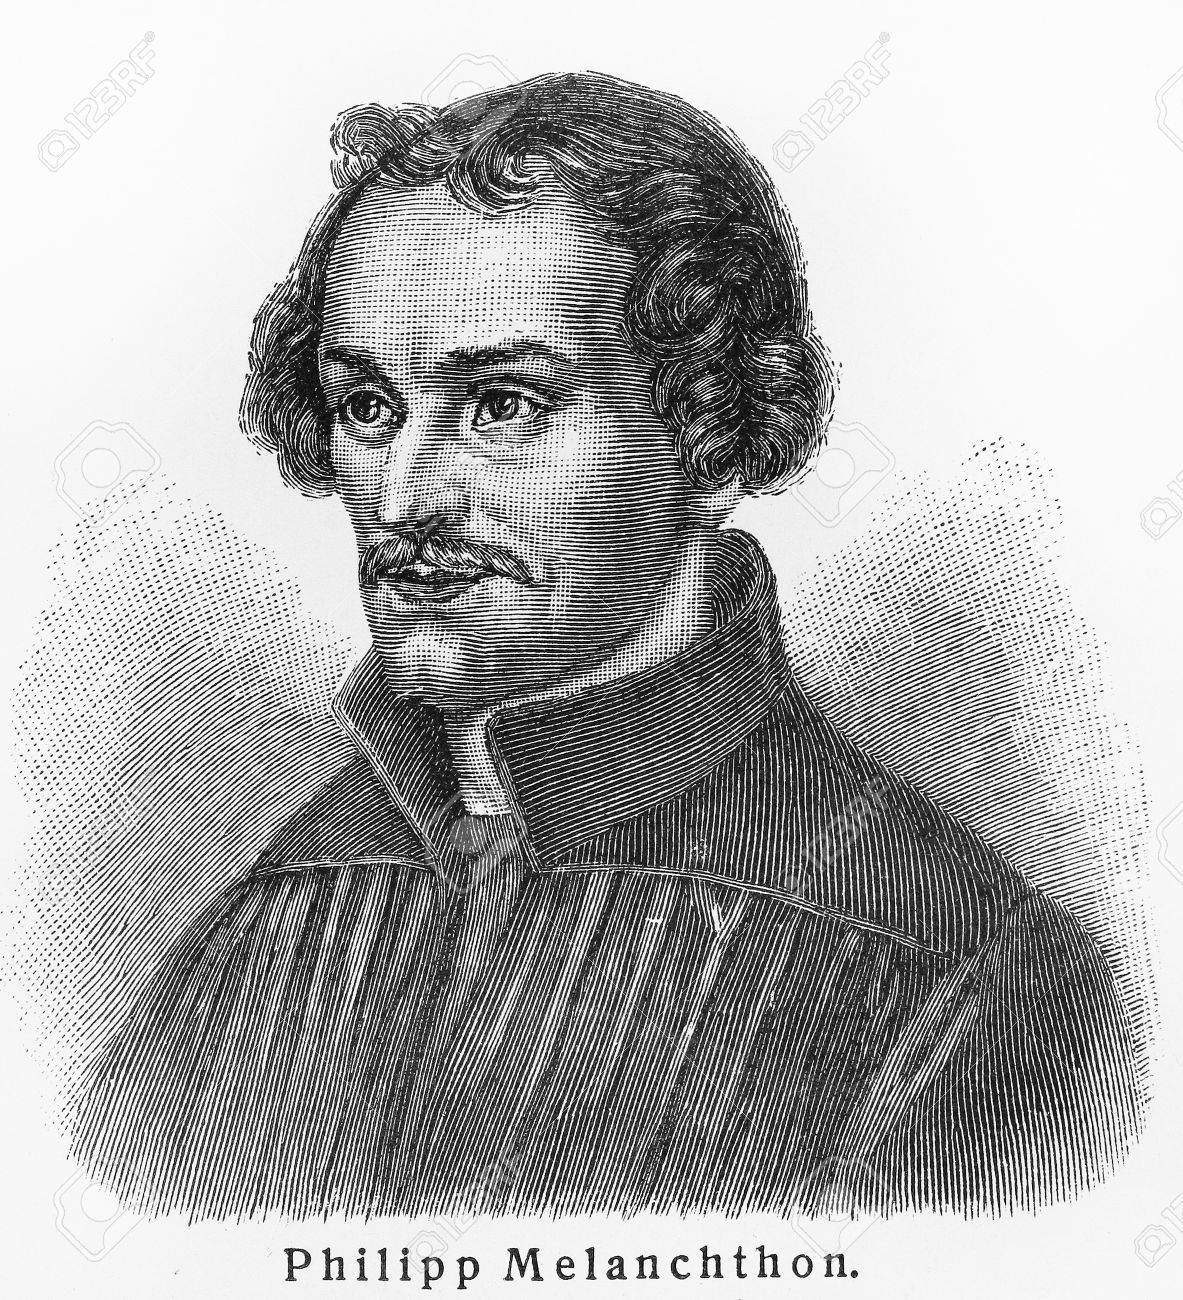 Philipp Melanchthon - Picture from Meyers Lexicon books written in German language. Collection of 21 volumes published between 1905 and 1909. - 11273556